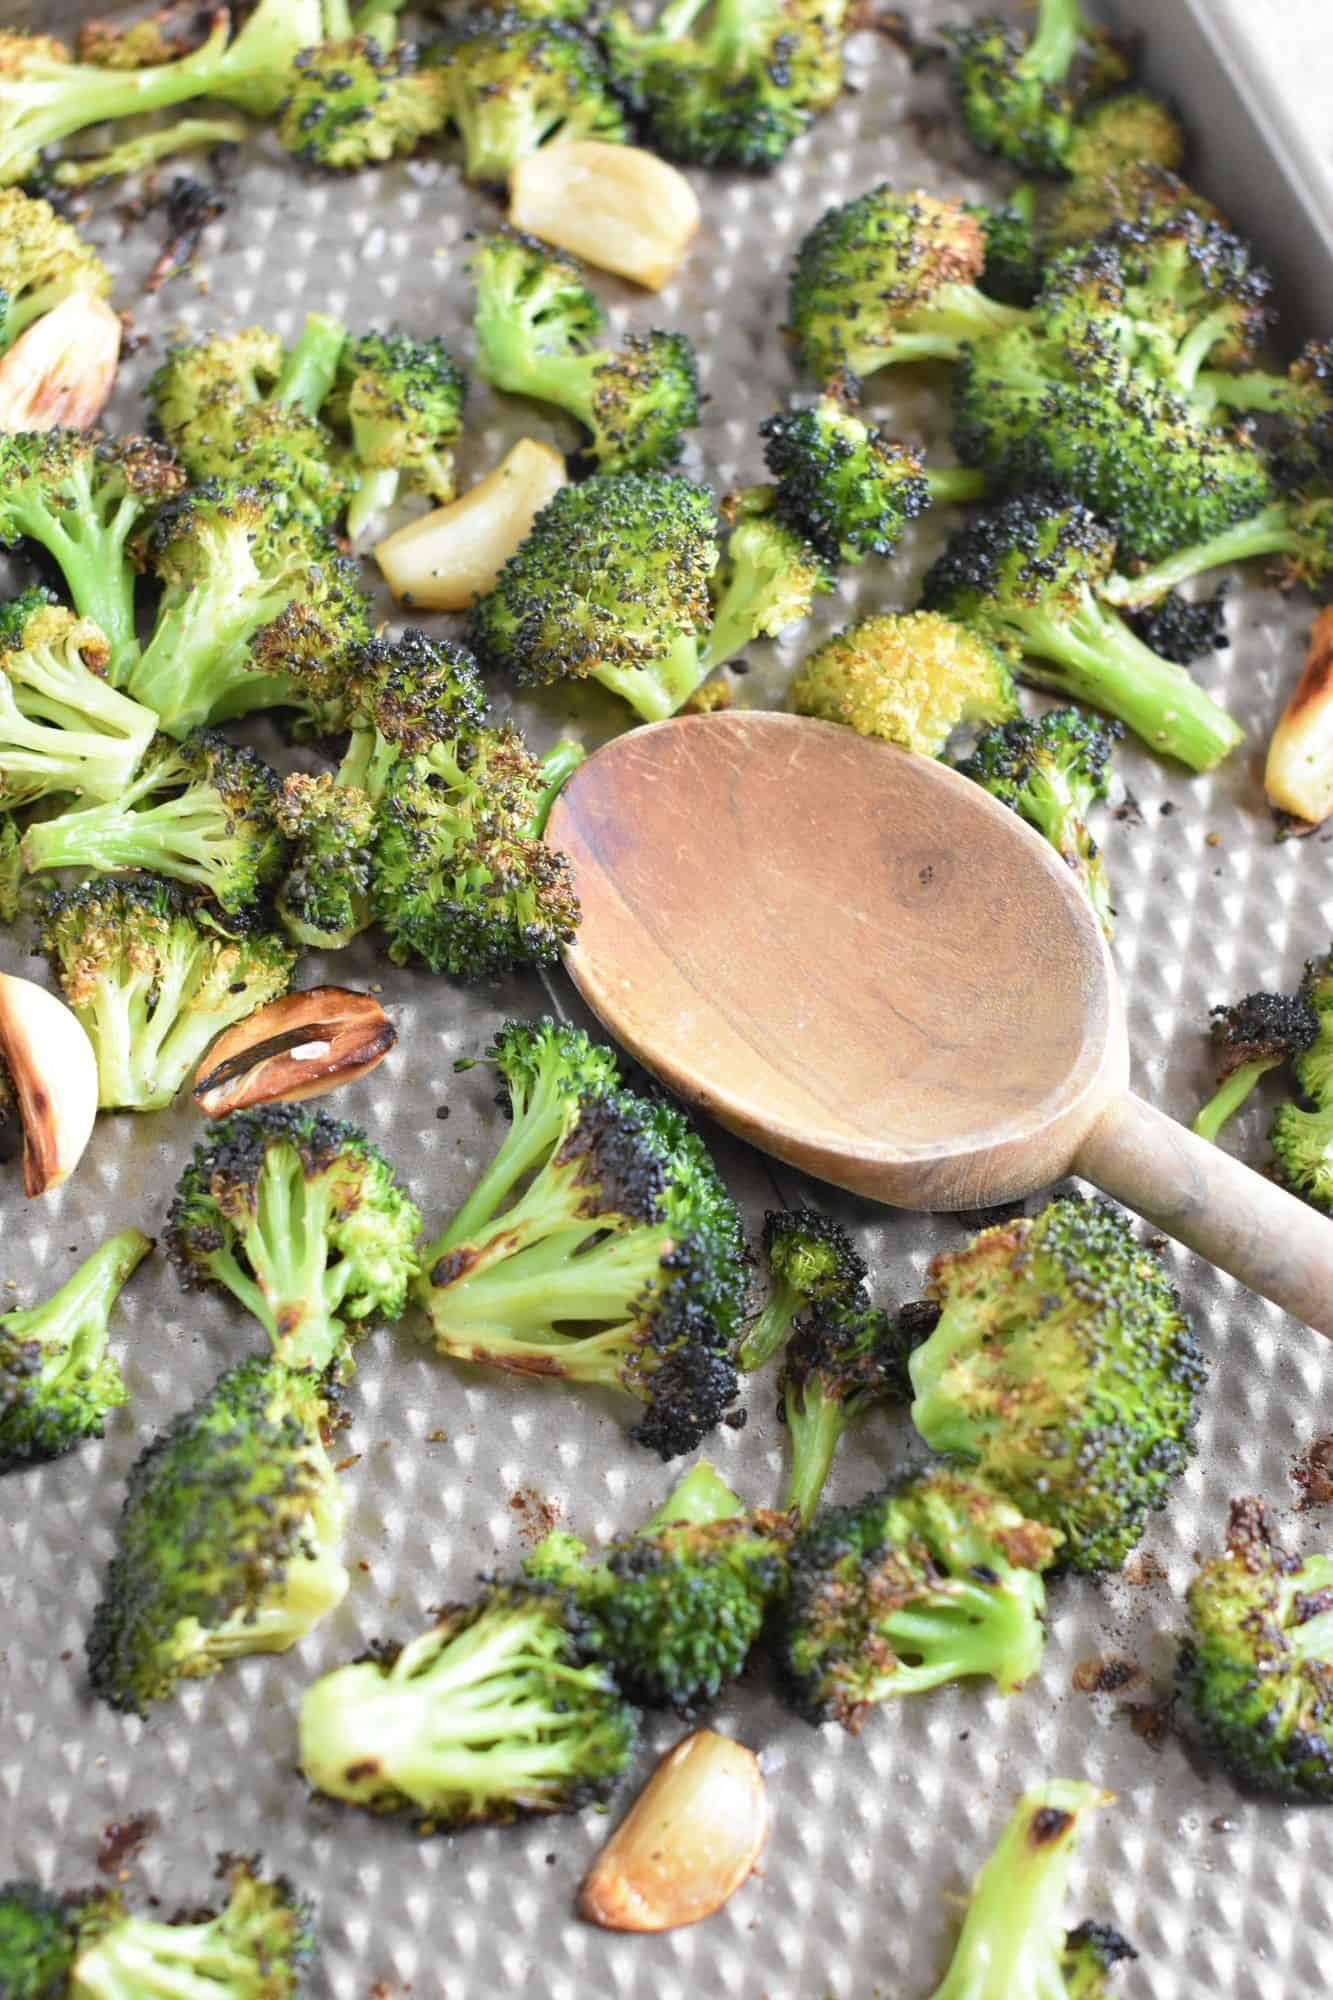 broccoli and garlic on baking sheet with wooden spoon after being cooked